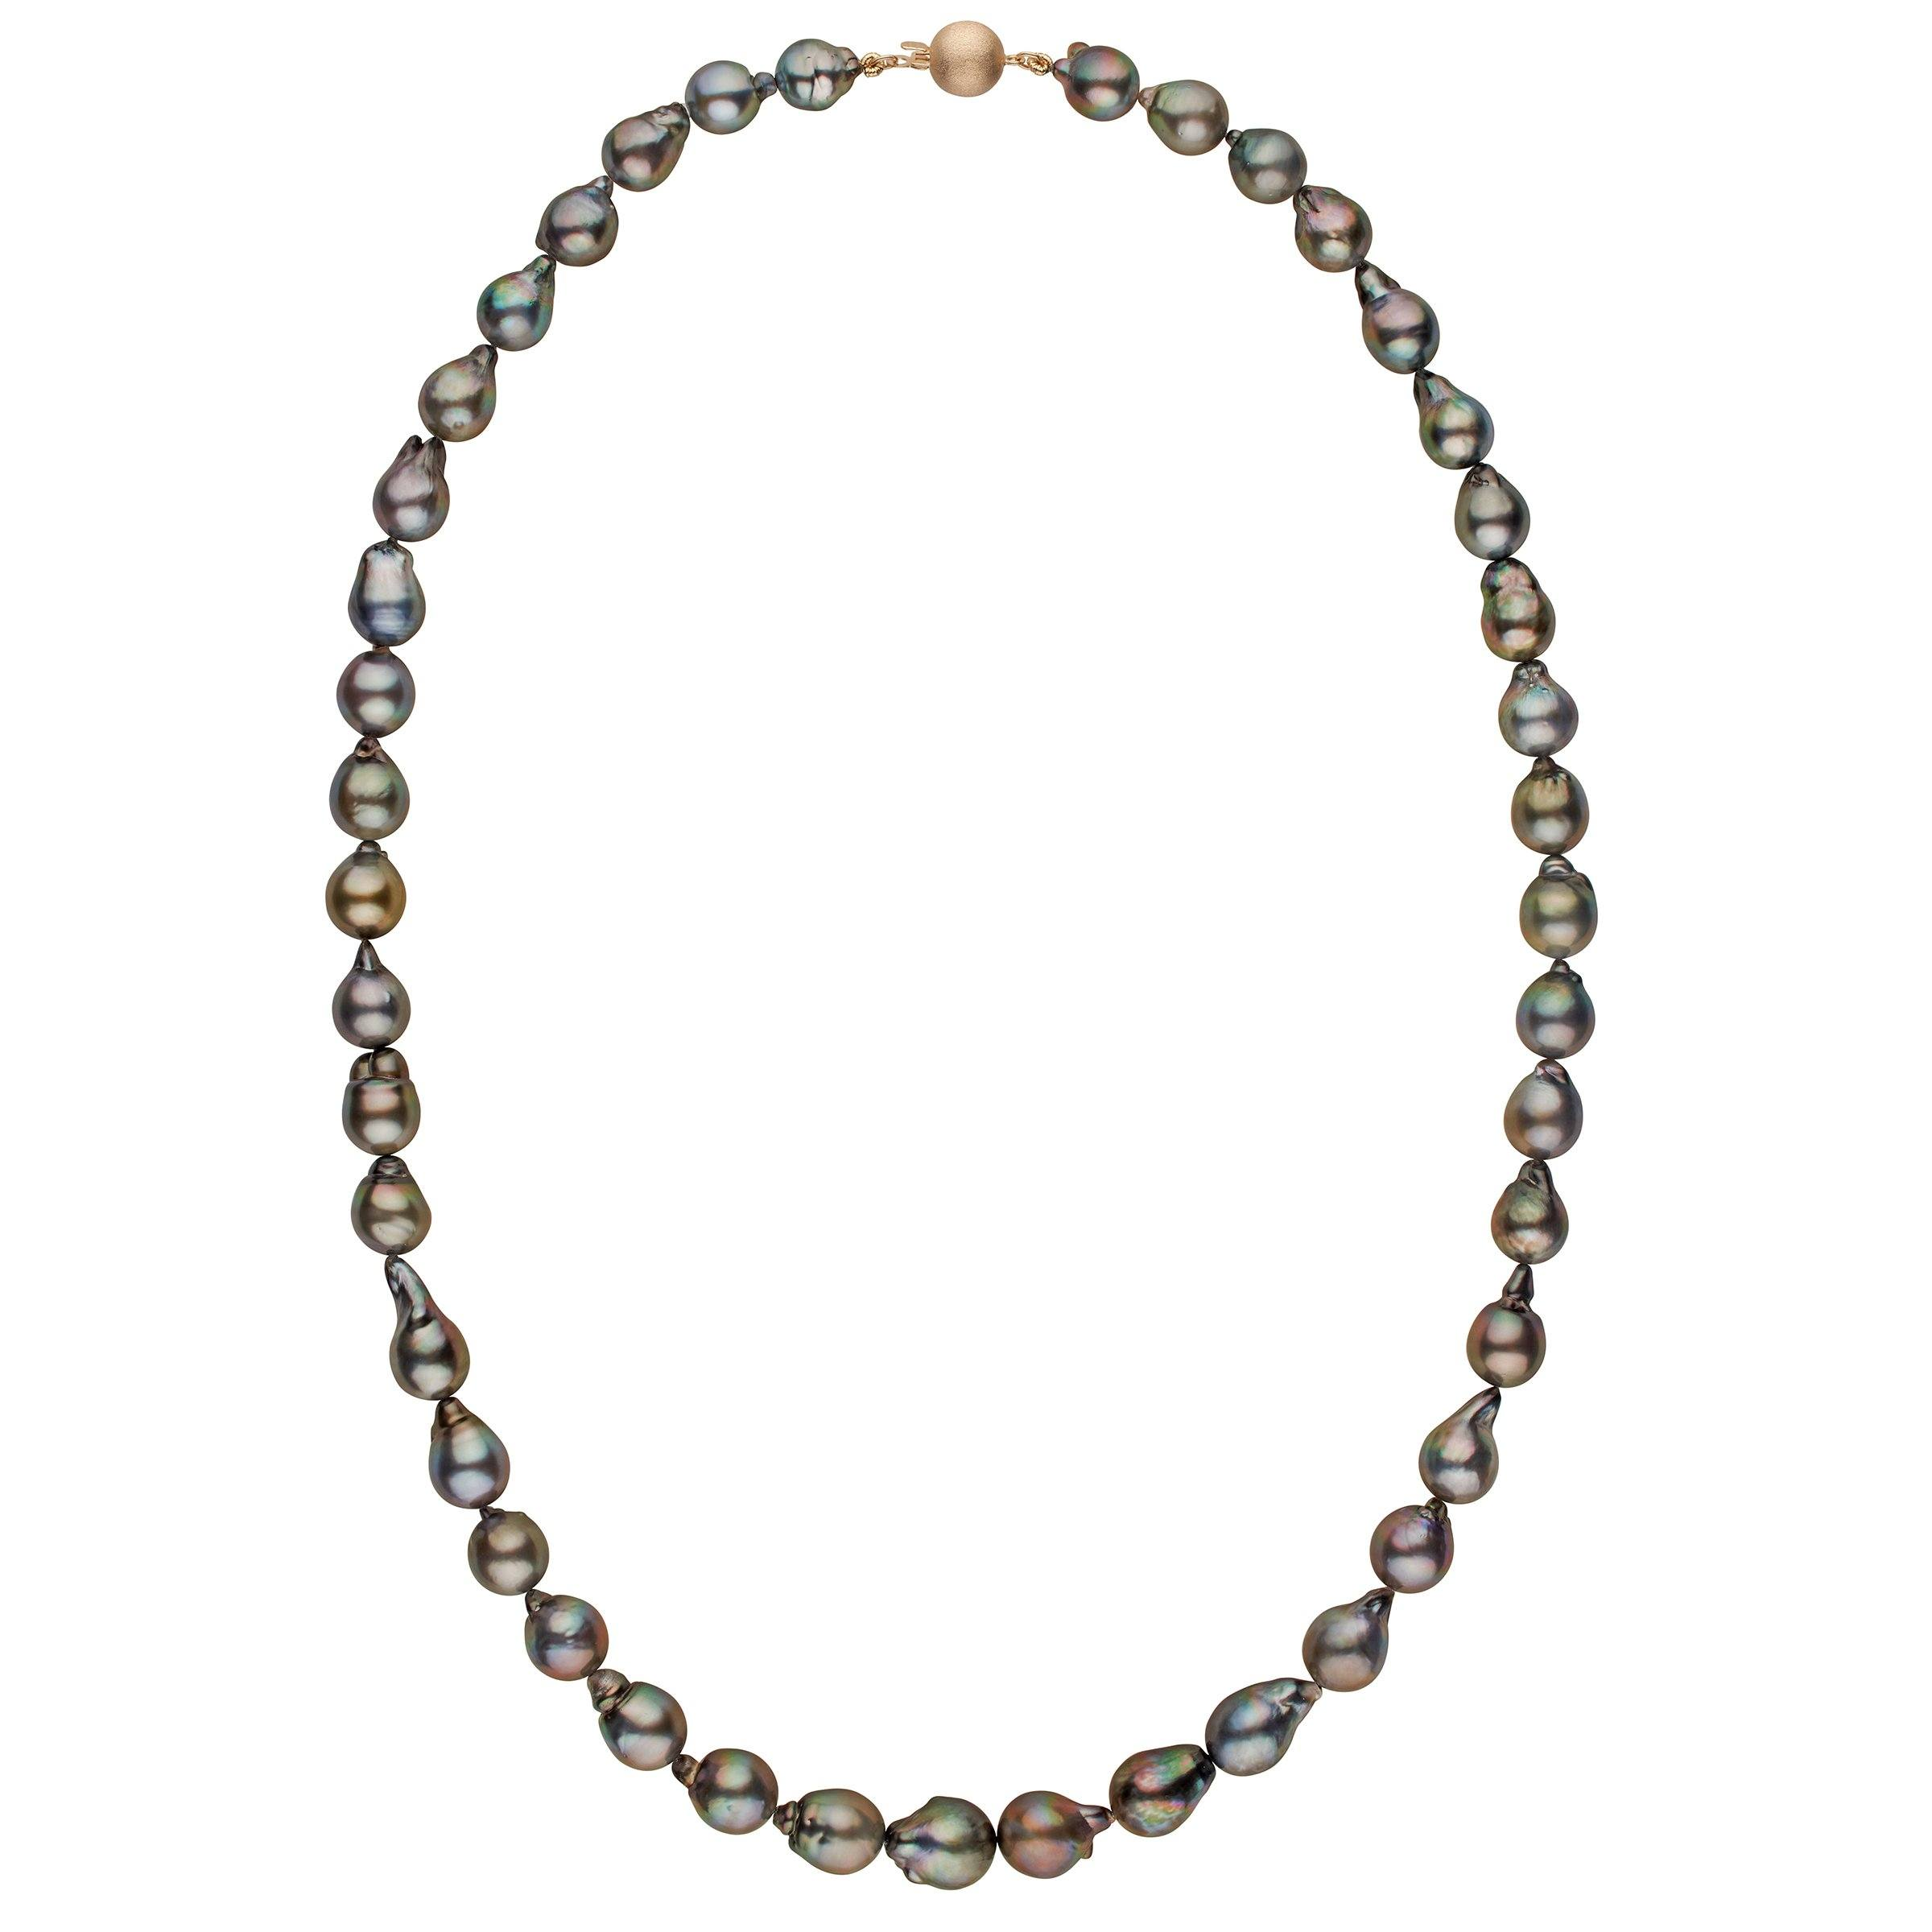 13.0-16.5 mm AA+/AAA Tahitian Baroque Pearl Necklace - 34 Inches